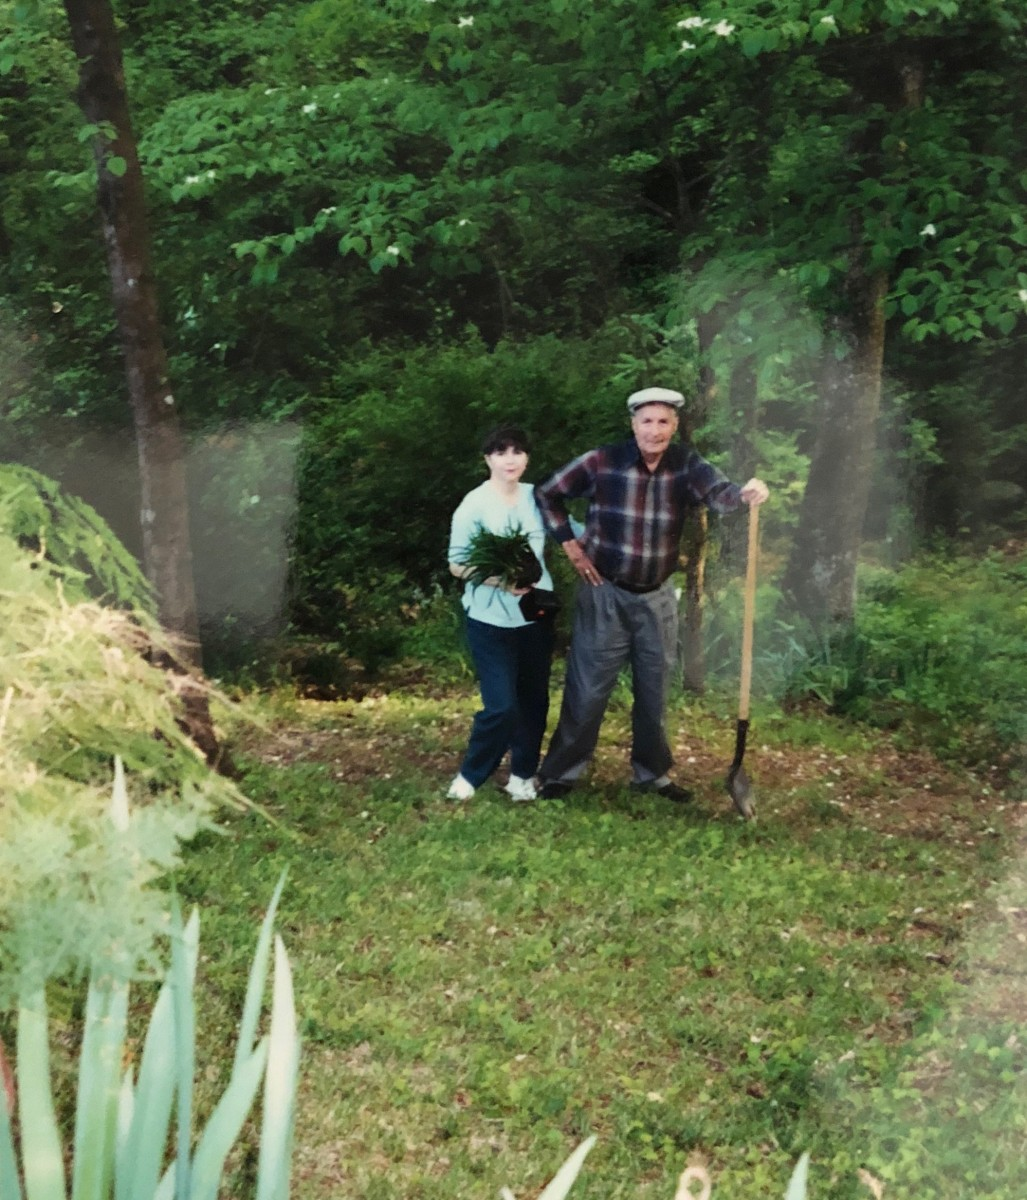 This is my dad and me. We had dug up some plants for me to put in my yard. By this time, he had grown too old to keep the entire hillside clear of underbrush, and I lived too far away (400 miles) to help.